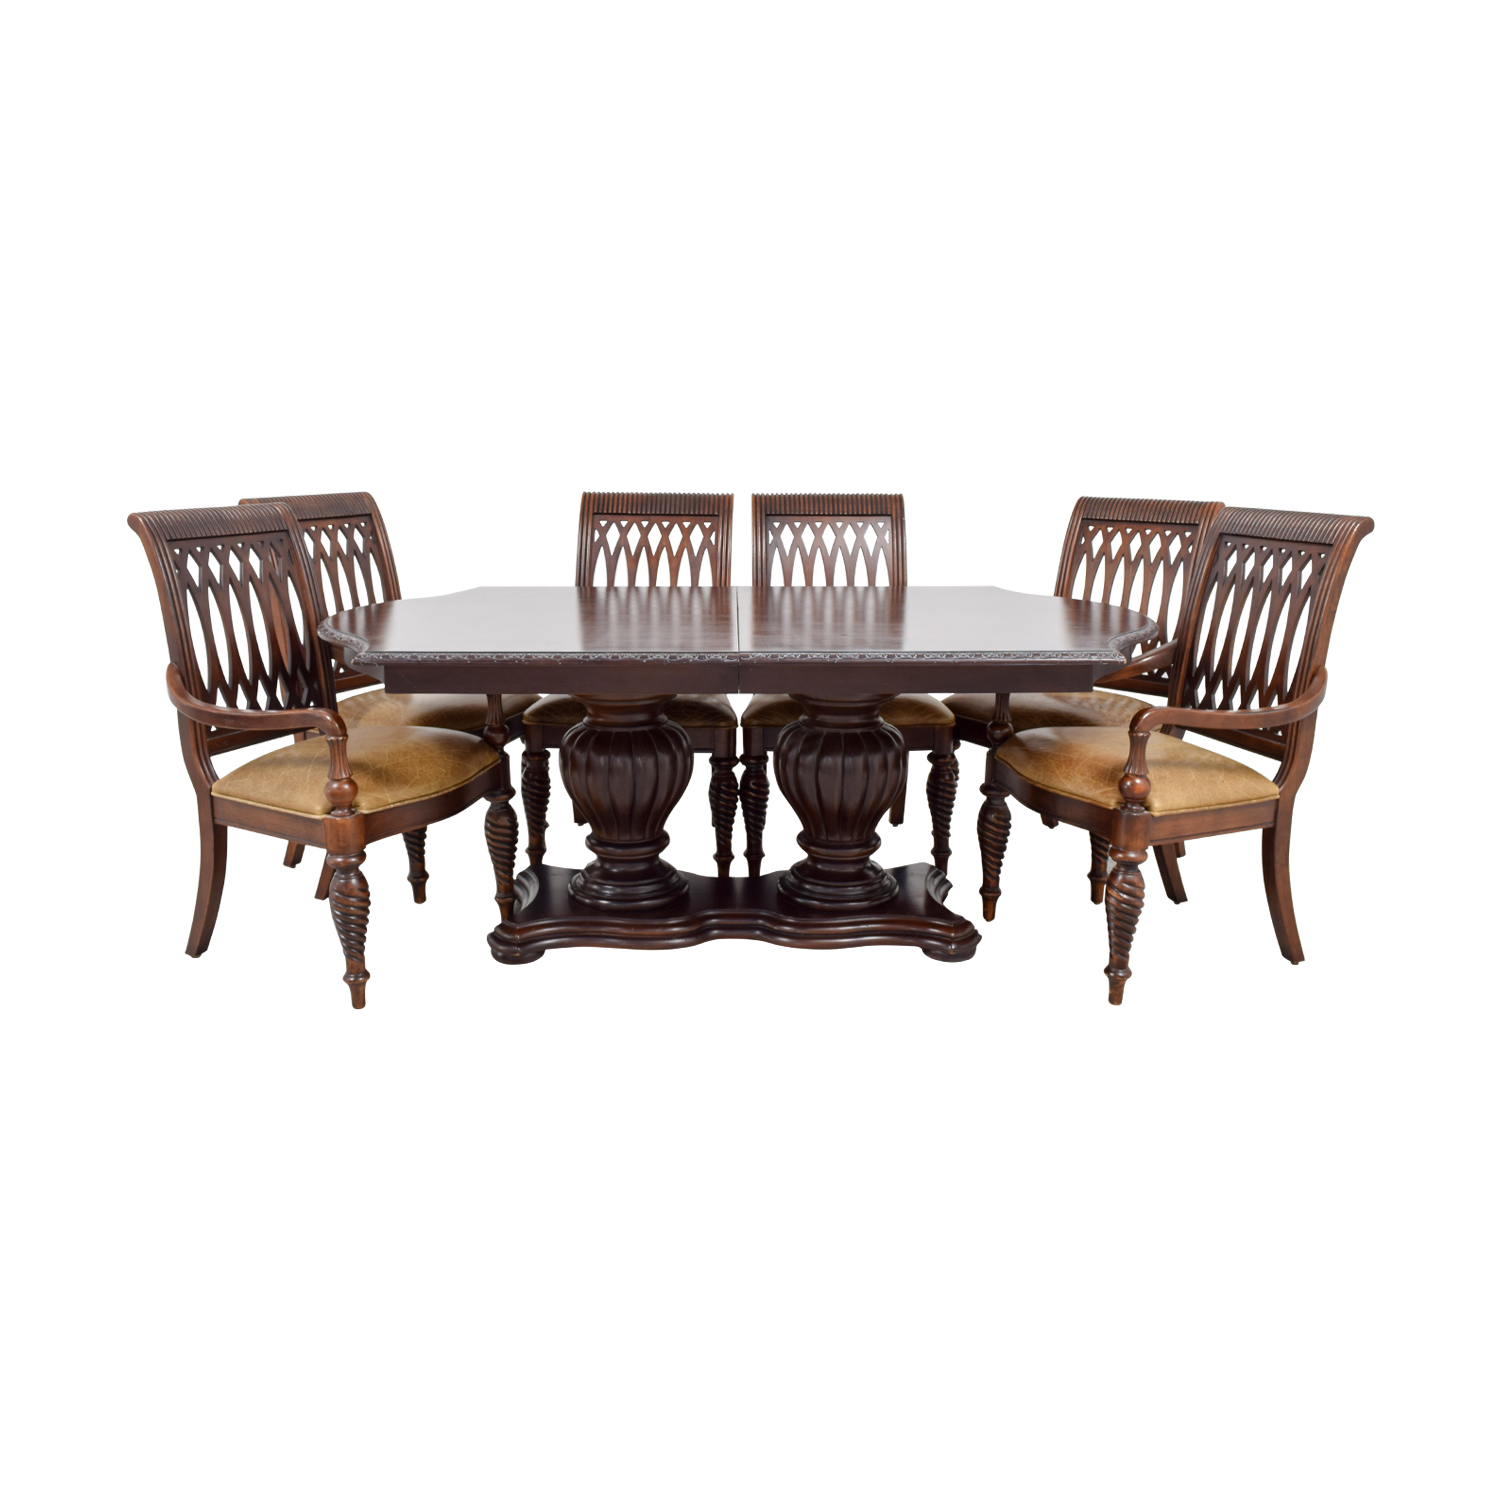 Bernhardt Bernhardt Cherry Double Pedestal Table Dining Set